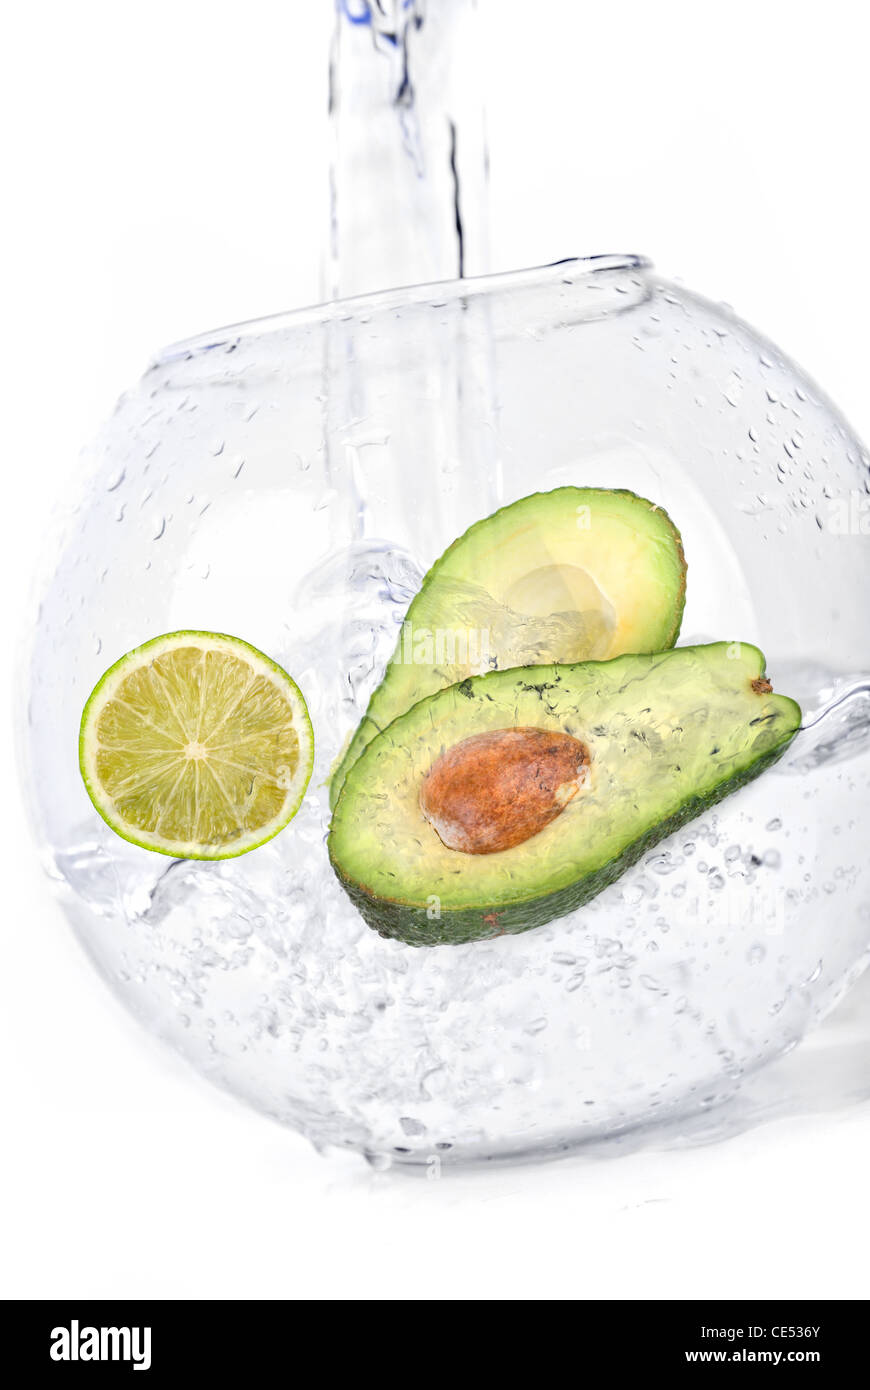 Green limes and avocado in water dropped isolated on a white - Stock Image